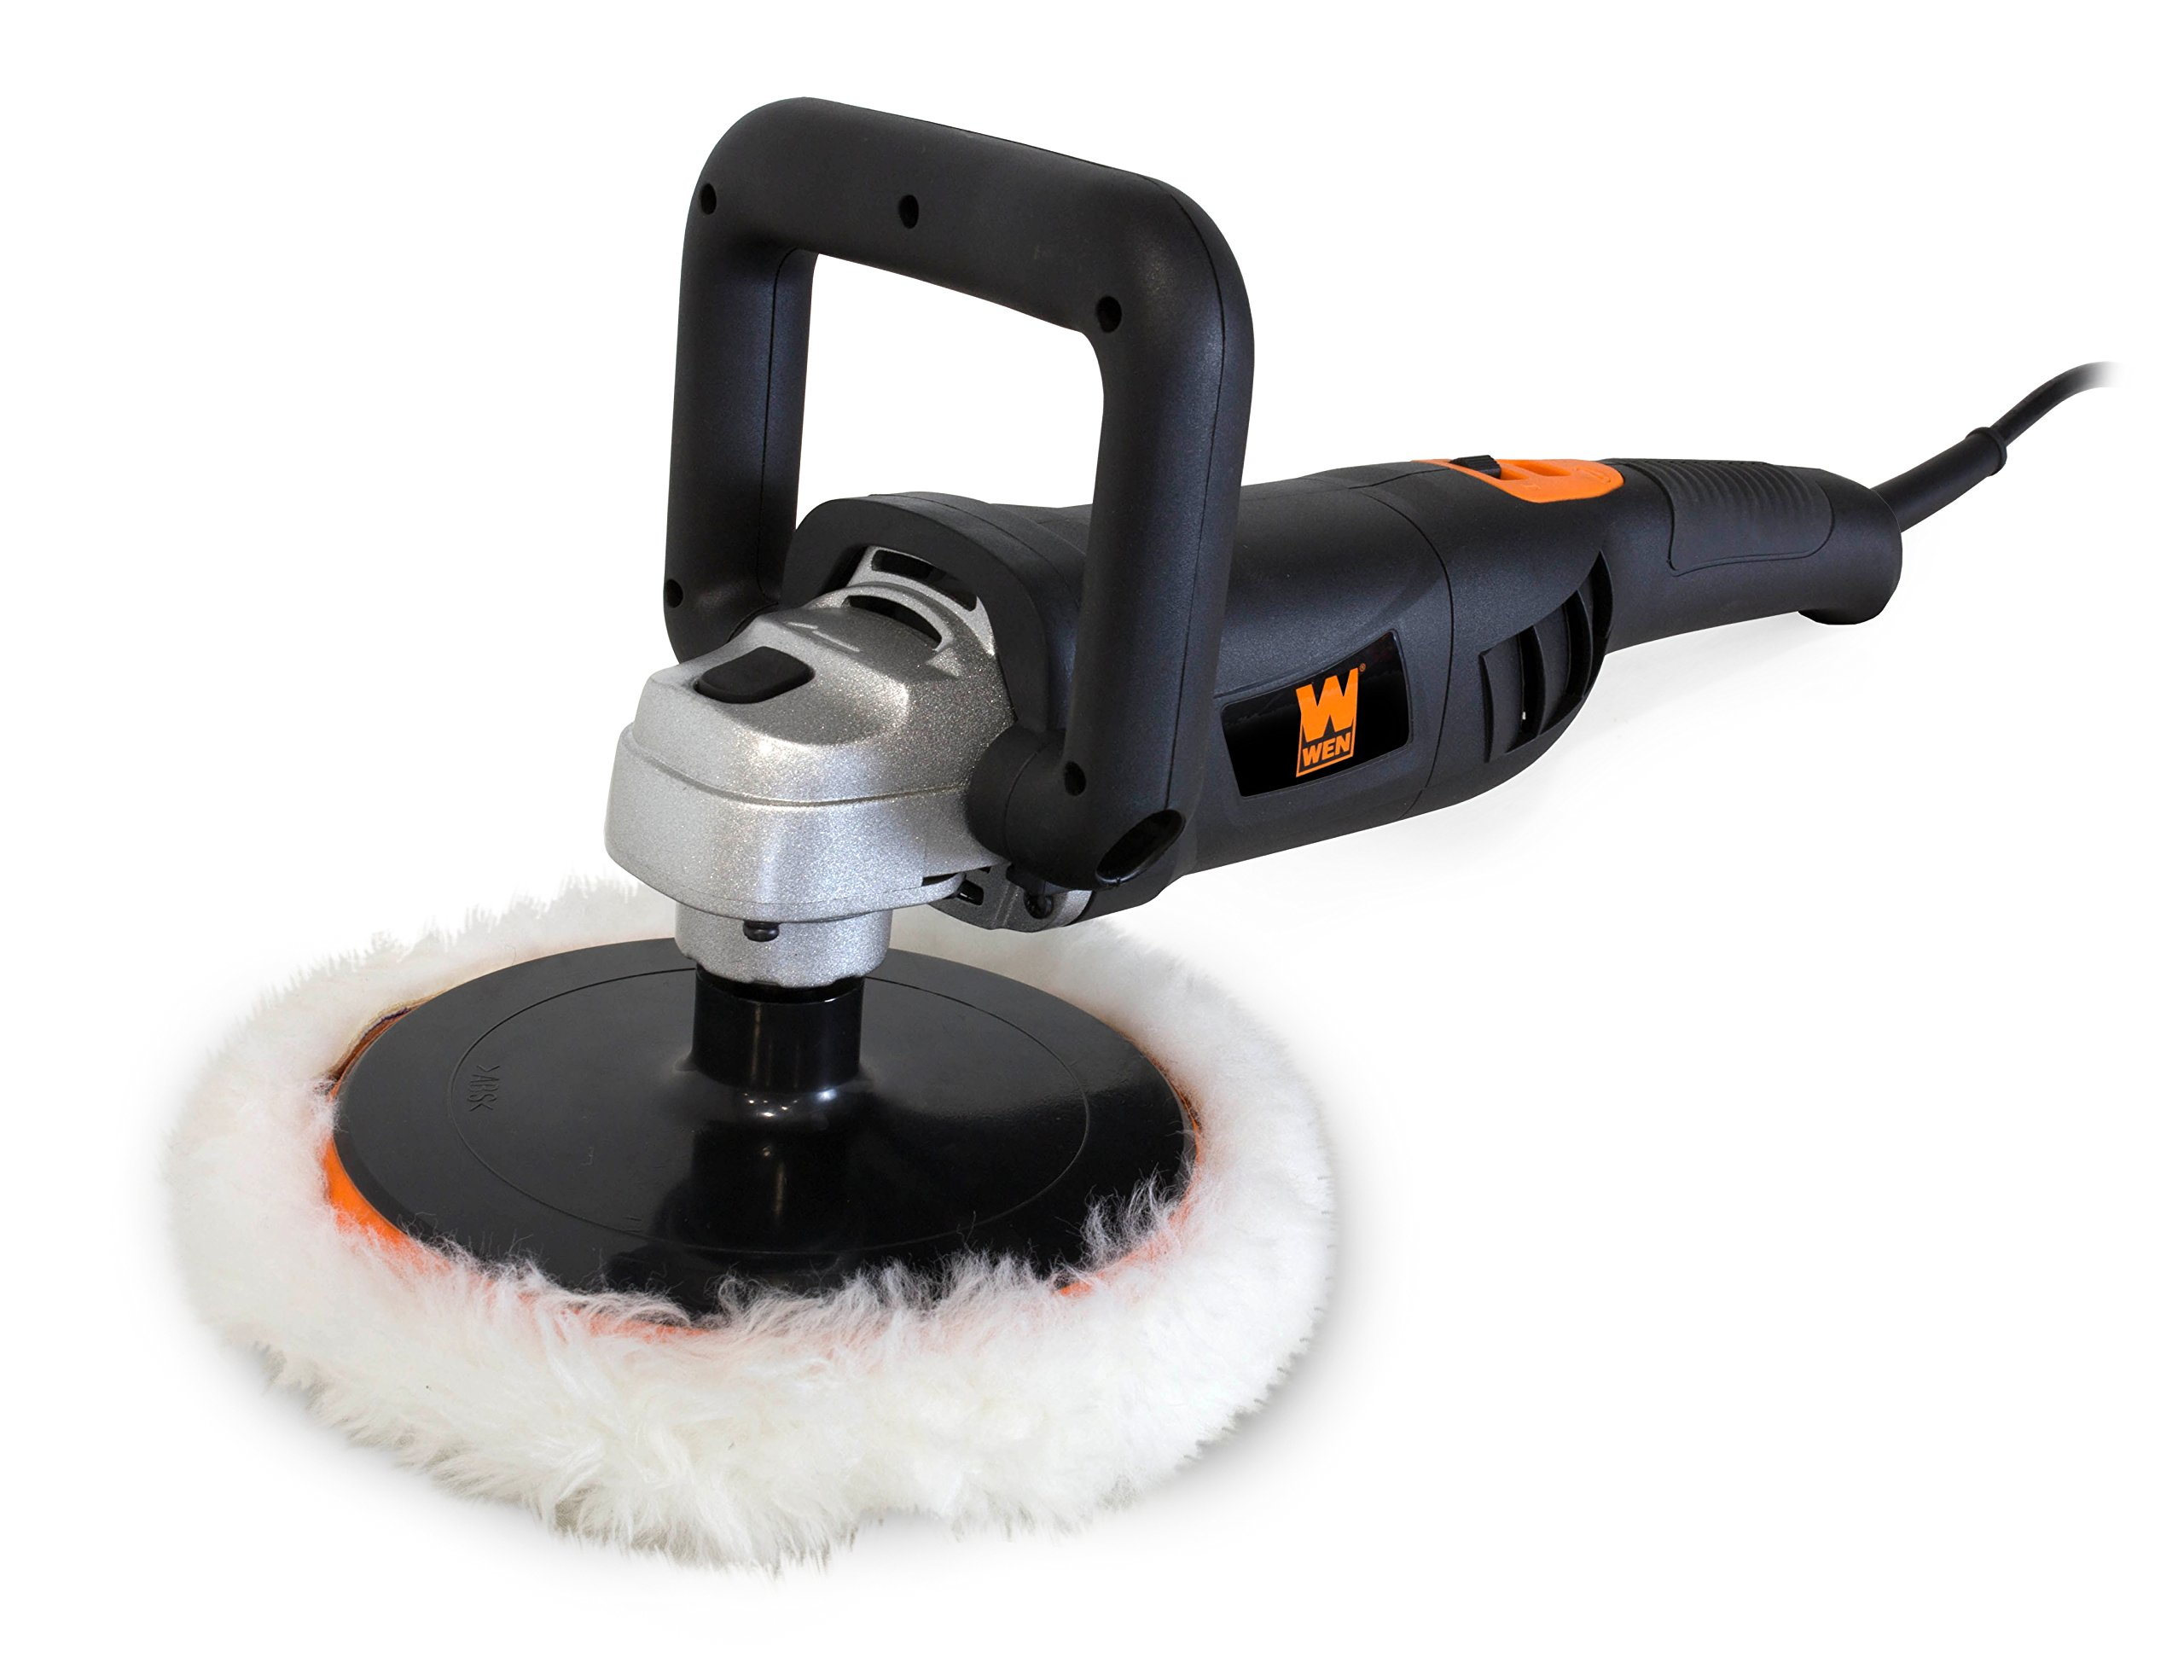 WEN 948 10 Amp Variable Speed Polisher with Digital Readout, 7''